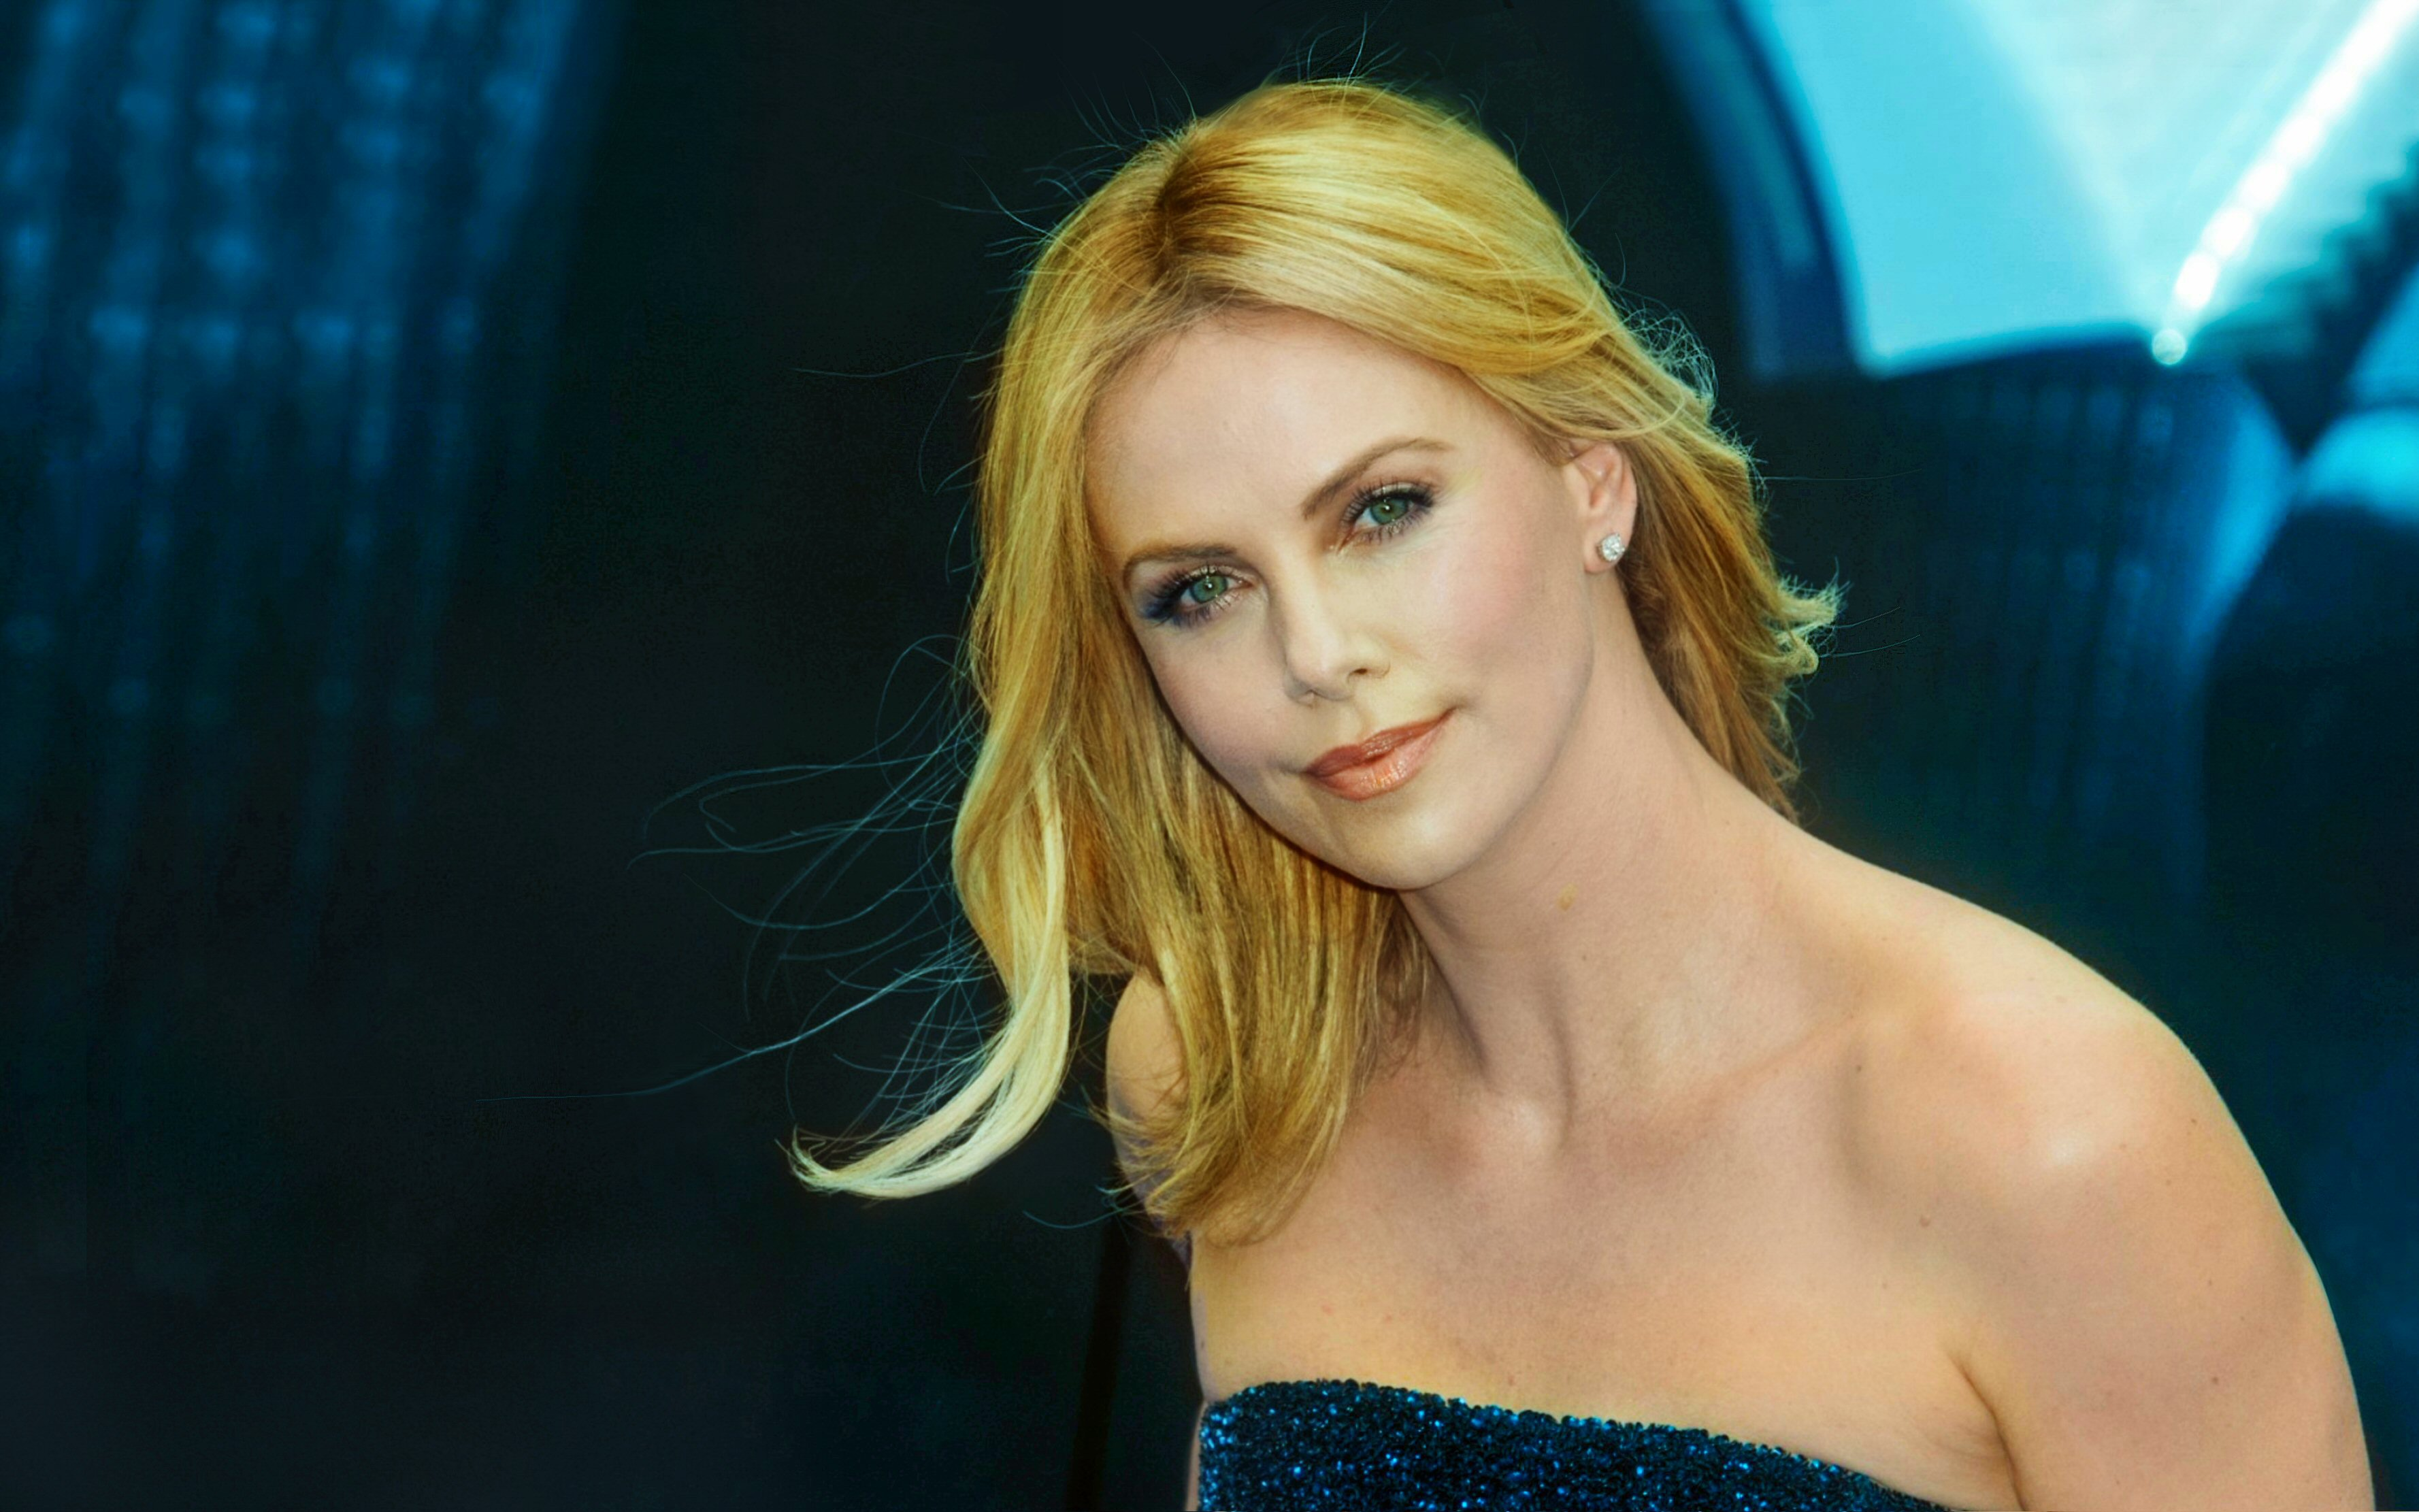 Smart Girl Wallpaper Com Sexy Charlize Theron New High Defination Pictures All Hd